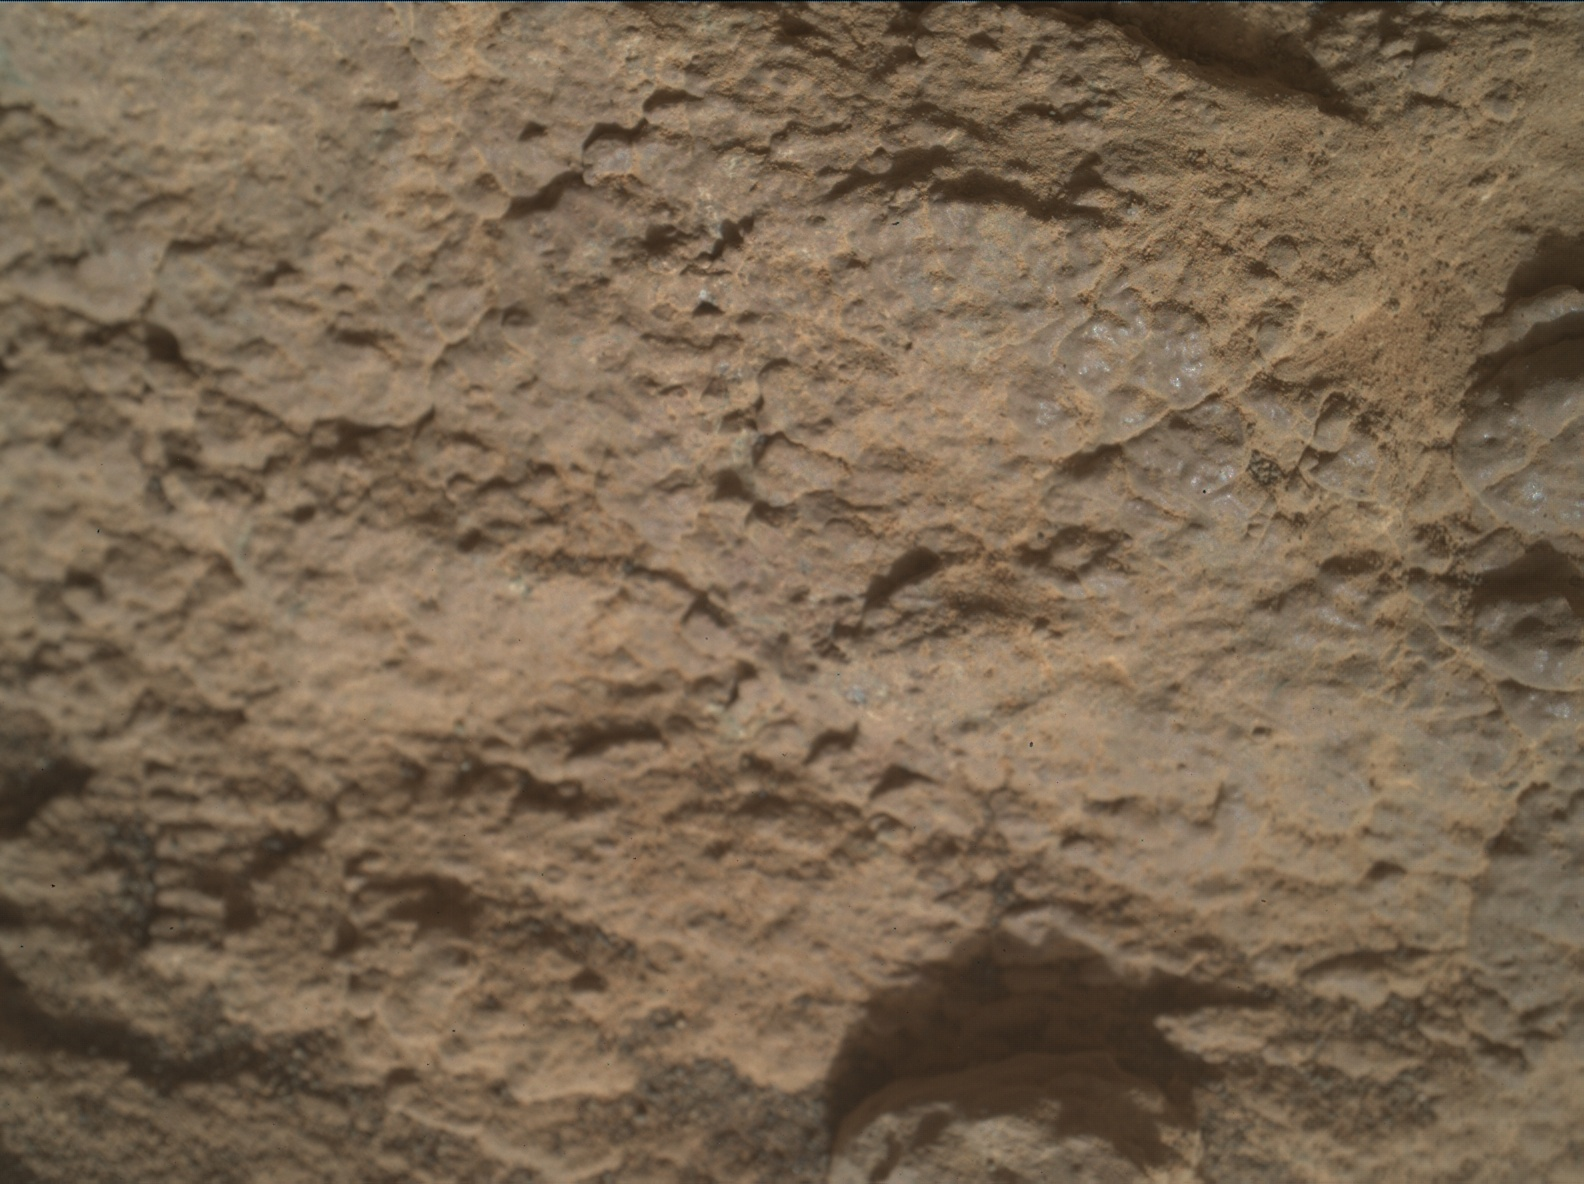 Nasa's Mars rover Curiosity acquired this image using its Mars Hand Lens Imager (MAHLI) on Sol 2591